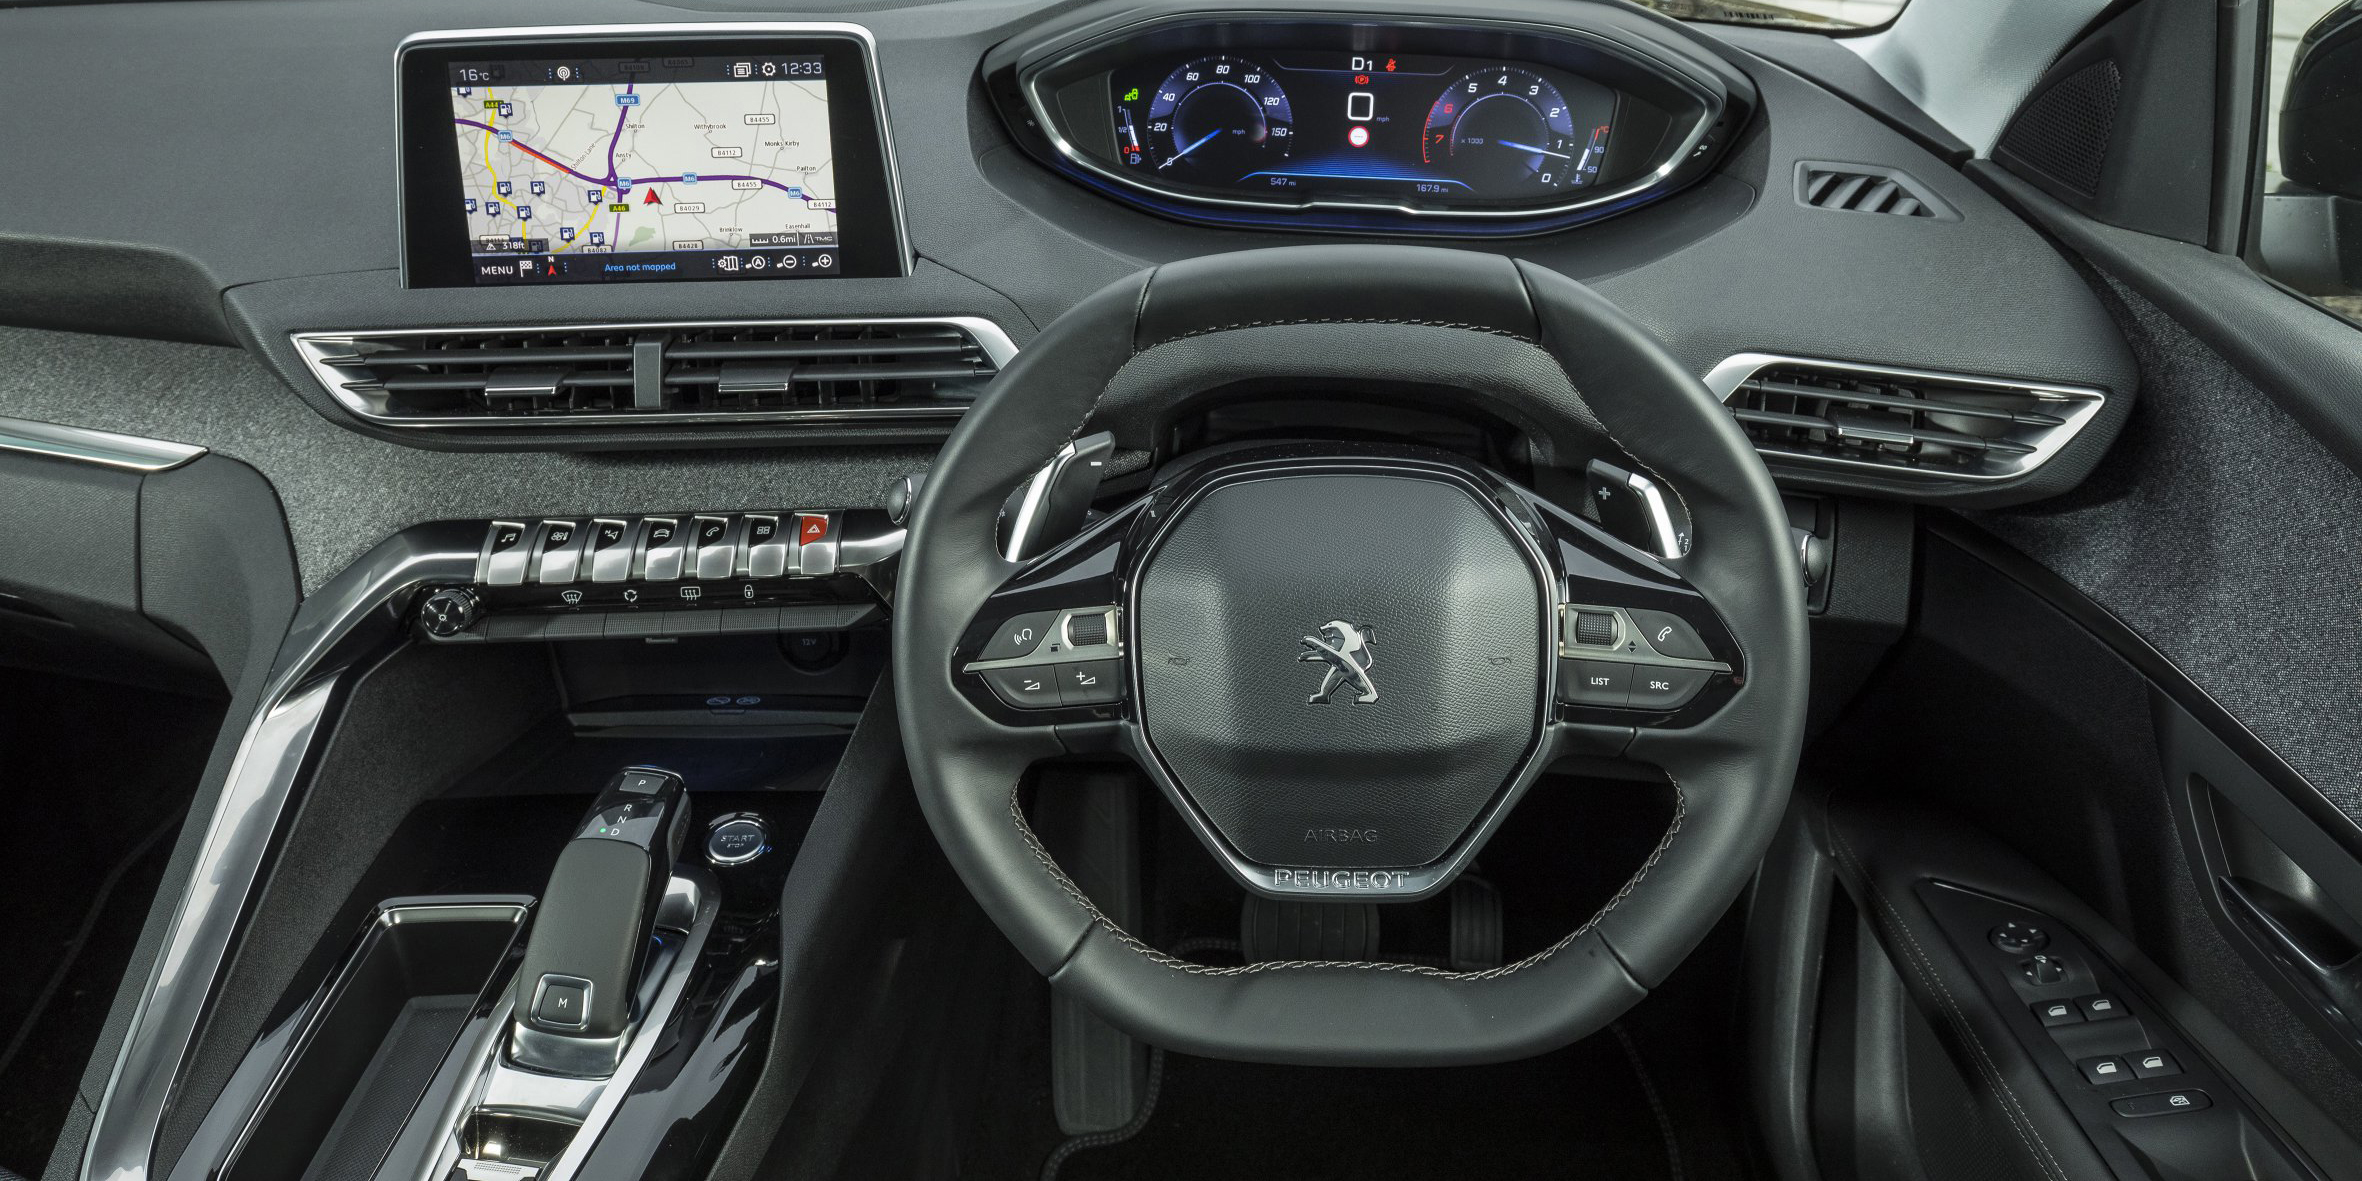 Peugeot 3008 Interior Infotainment Carwow